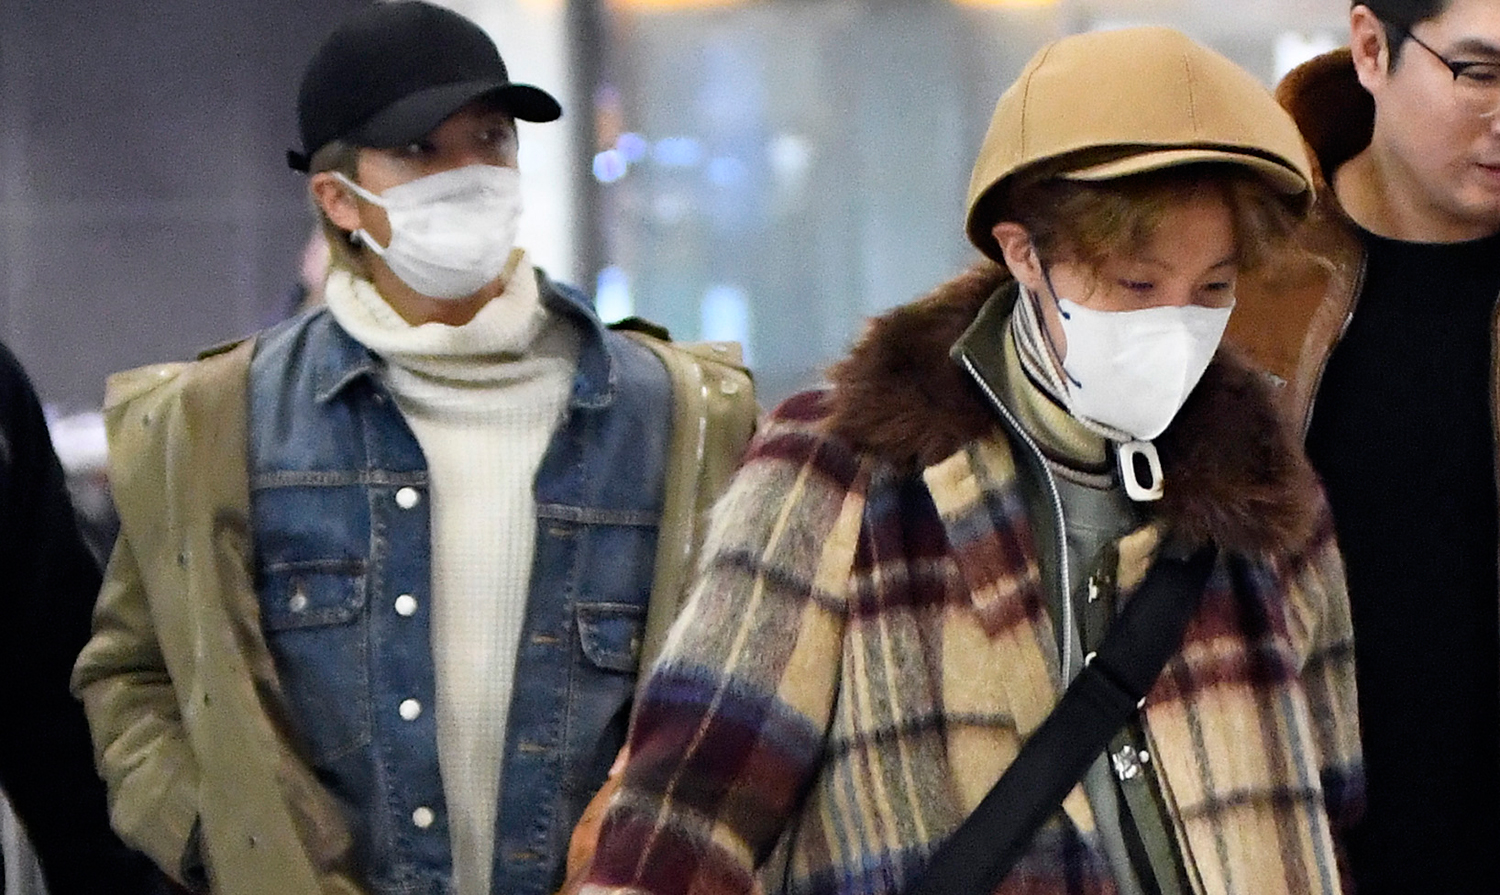 BTS Members Show Off Cool Airport Style in NYC!